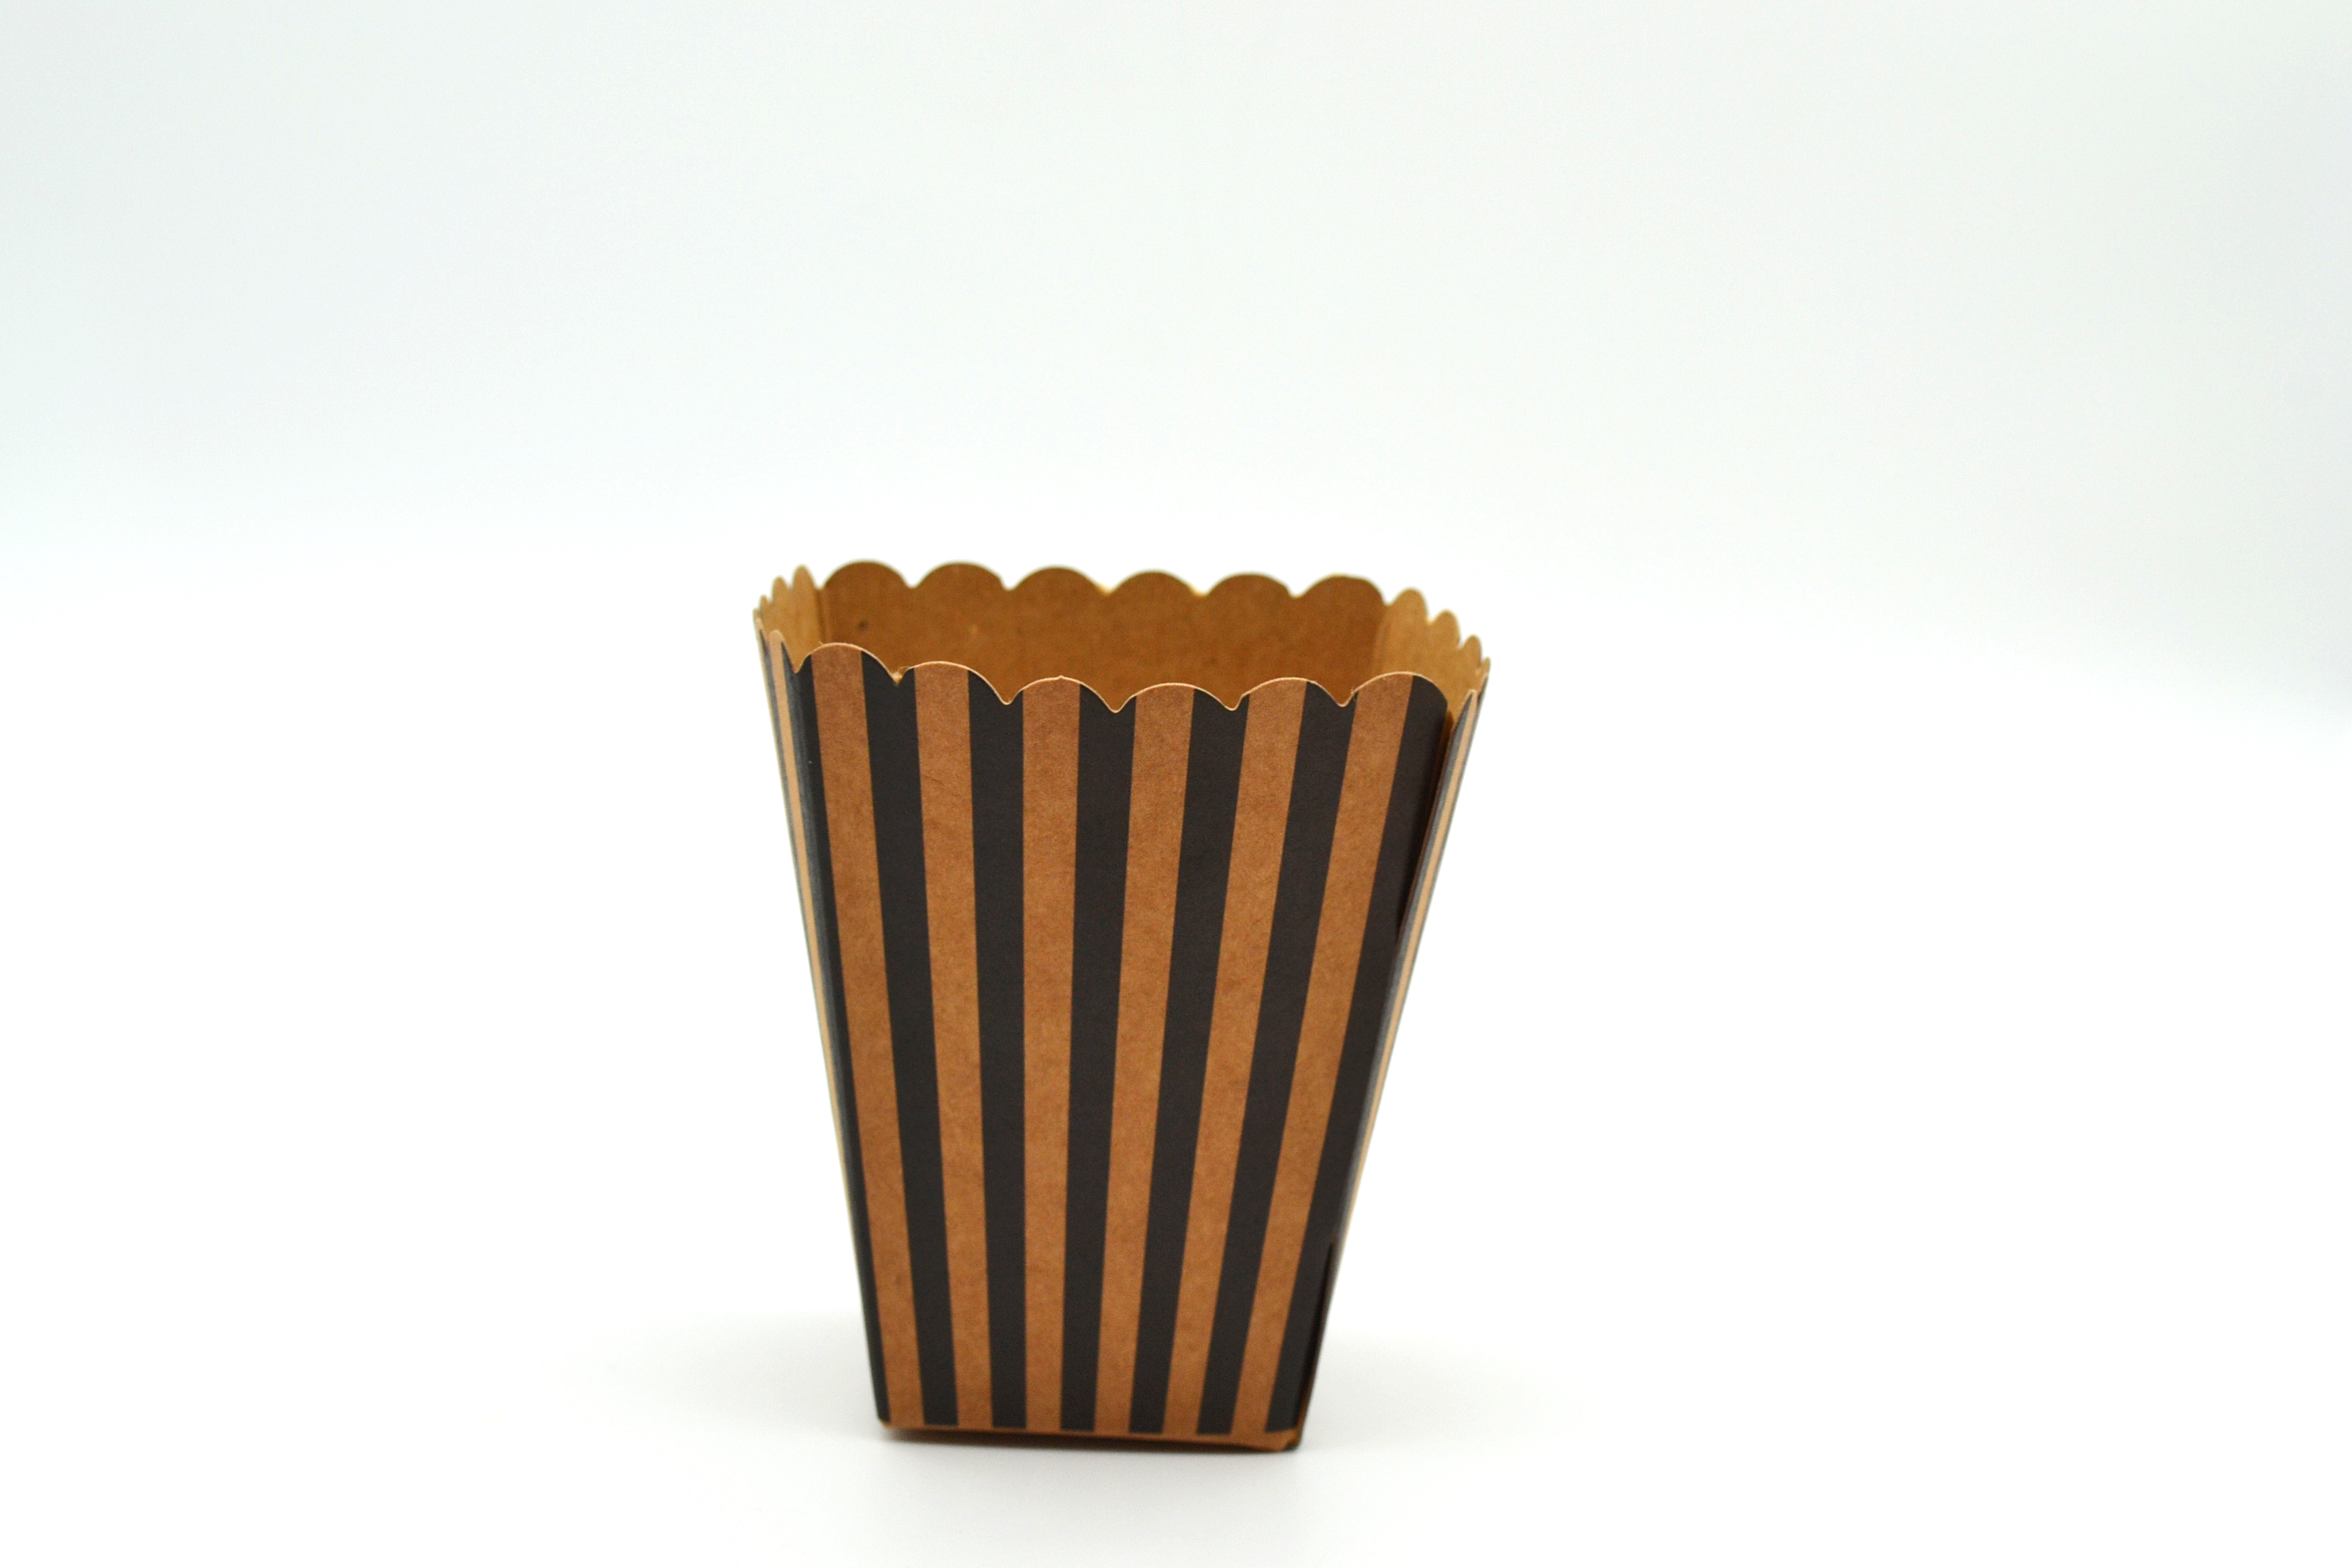 Box Popcorn Mini Eco B/Stripe 5 x 5 x 10 cm (each)